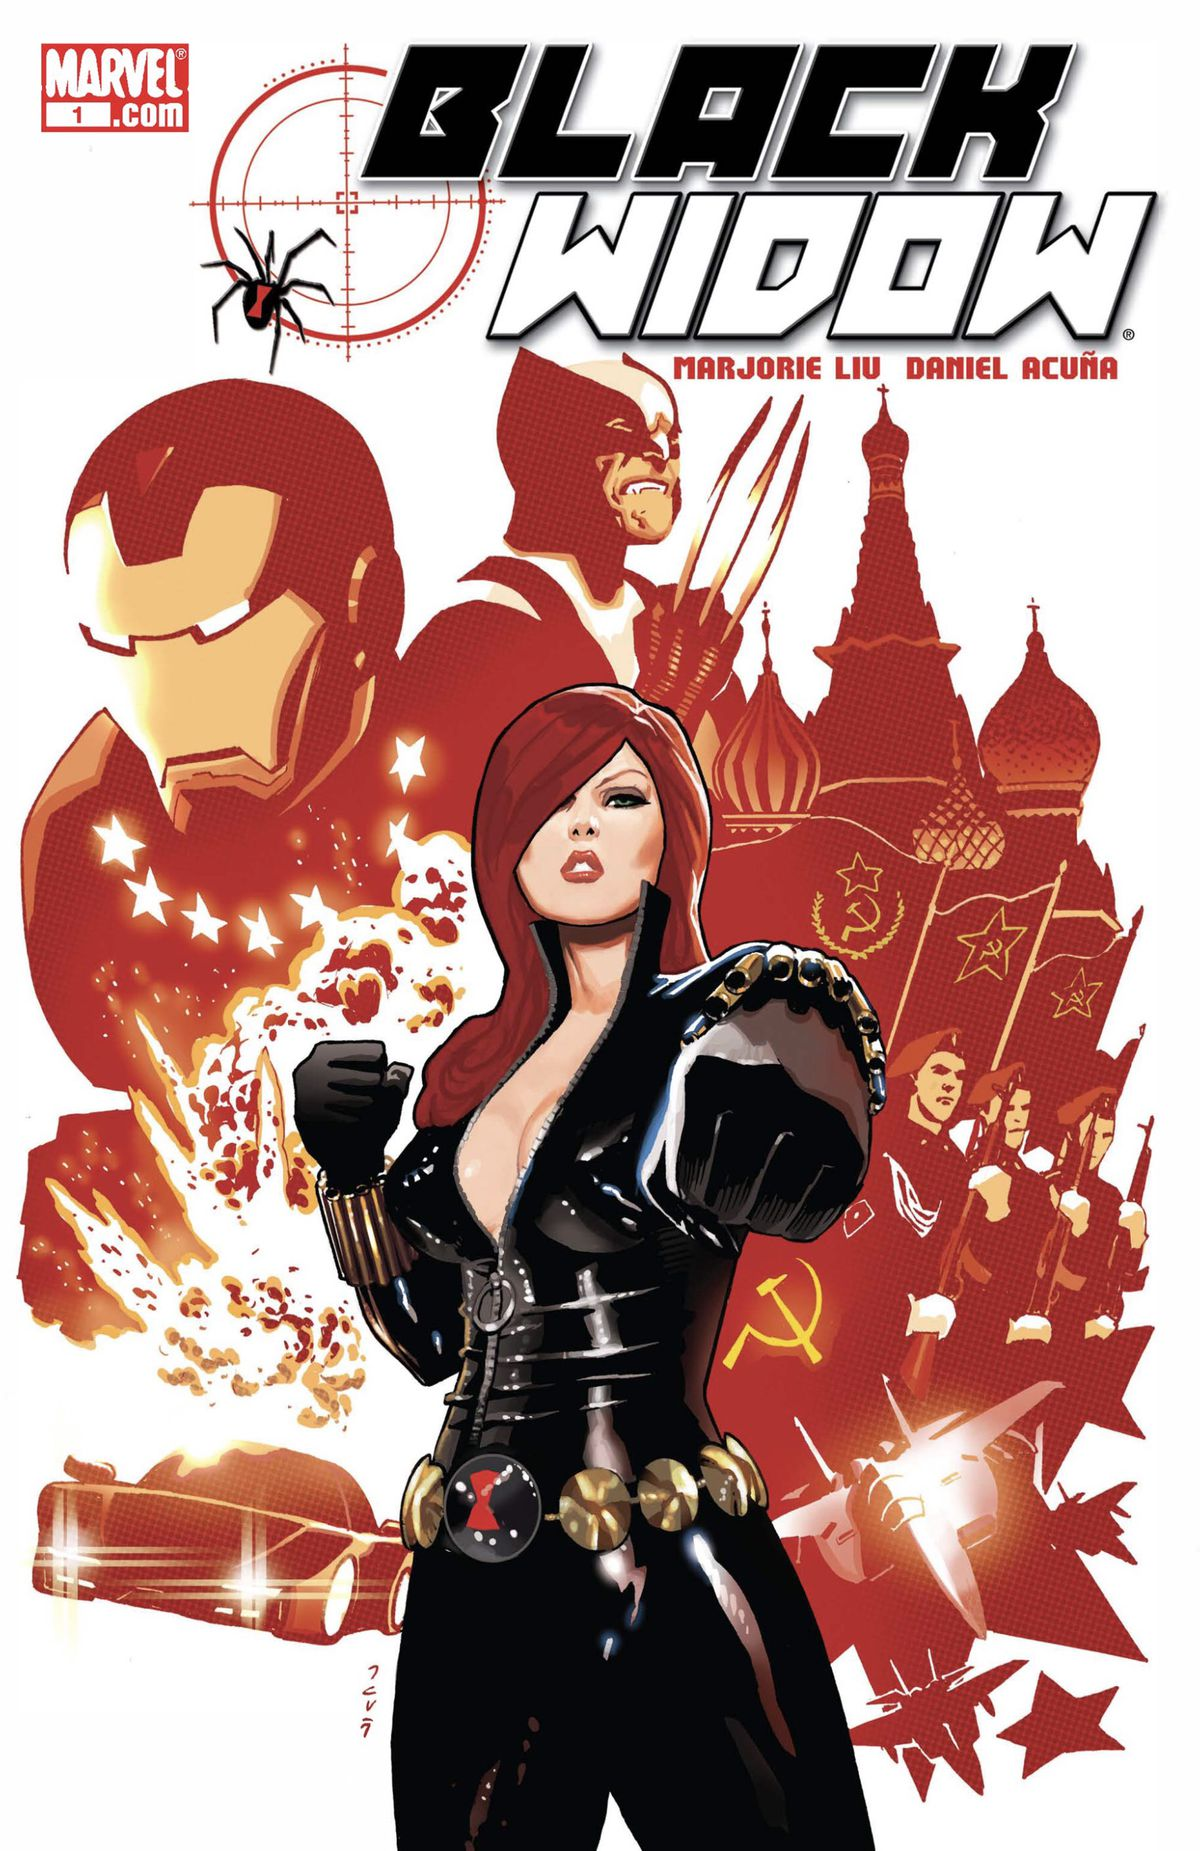 Black Widow/Natasha Romanoff points her wrist blaster at the camera, in front of a collage of Russian military symbols, Iron Man and Wolverine.